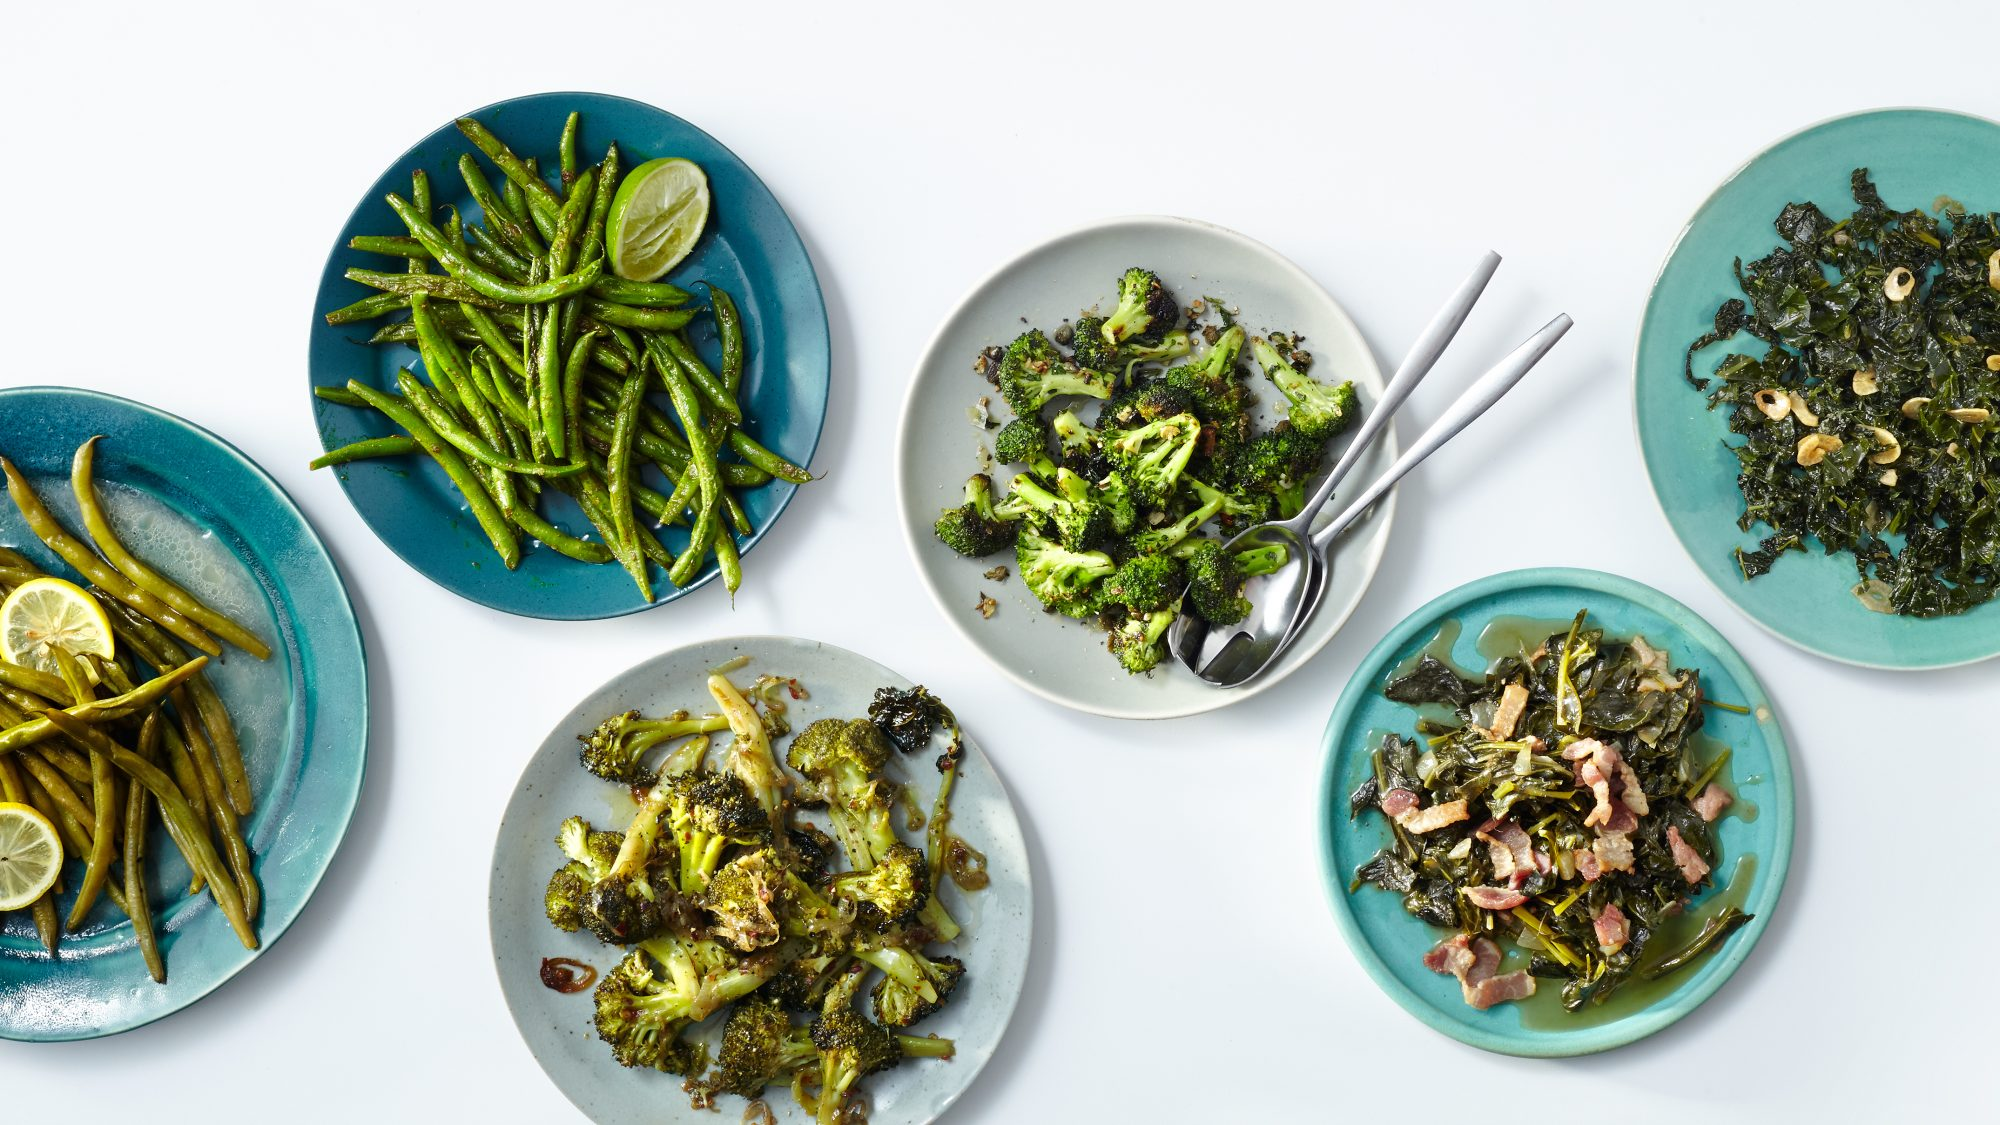 green bean broccoli and collard vegetable side dishes